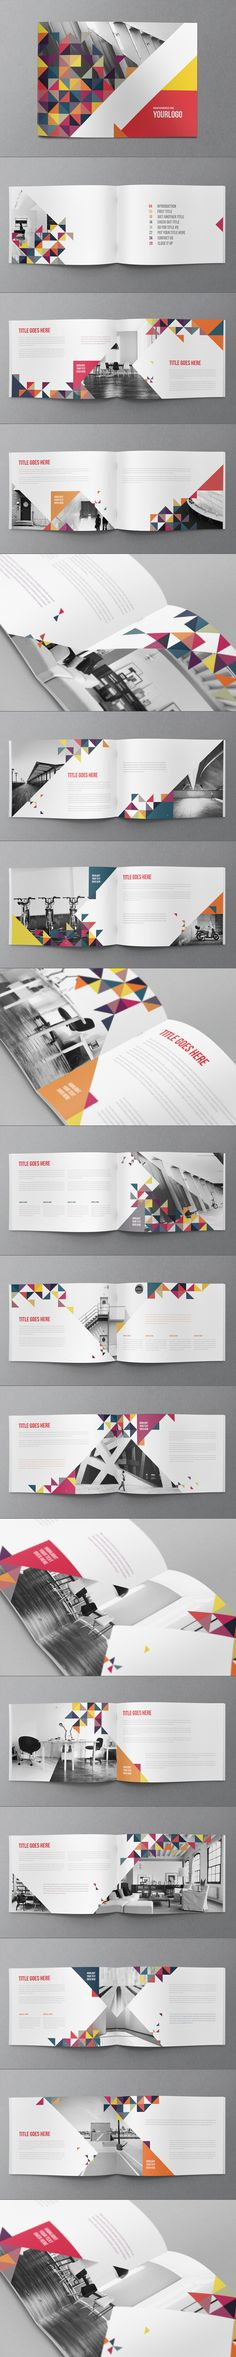 Colorful Triangles Brochure | Designer: Abra Design